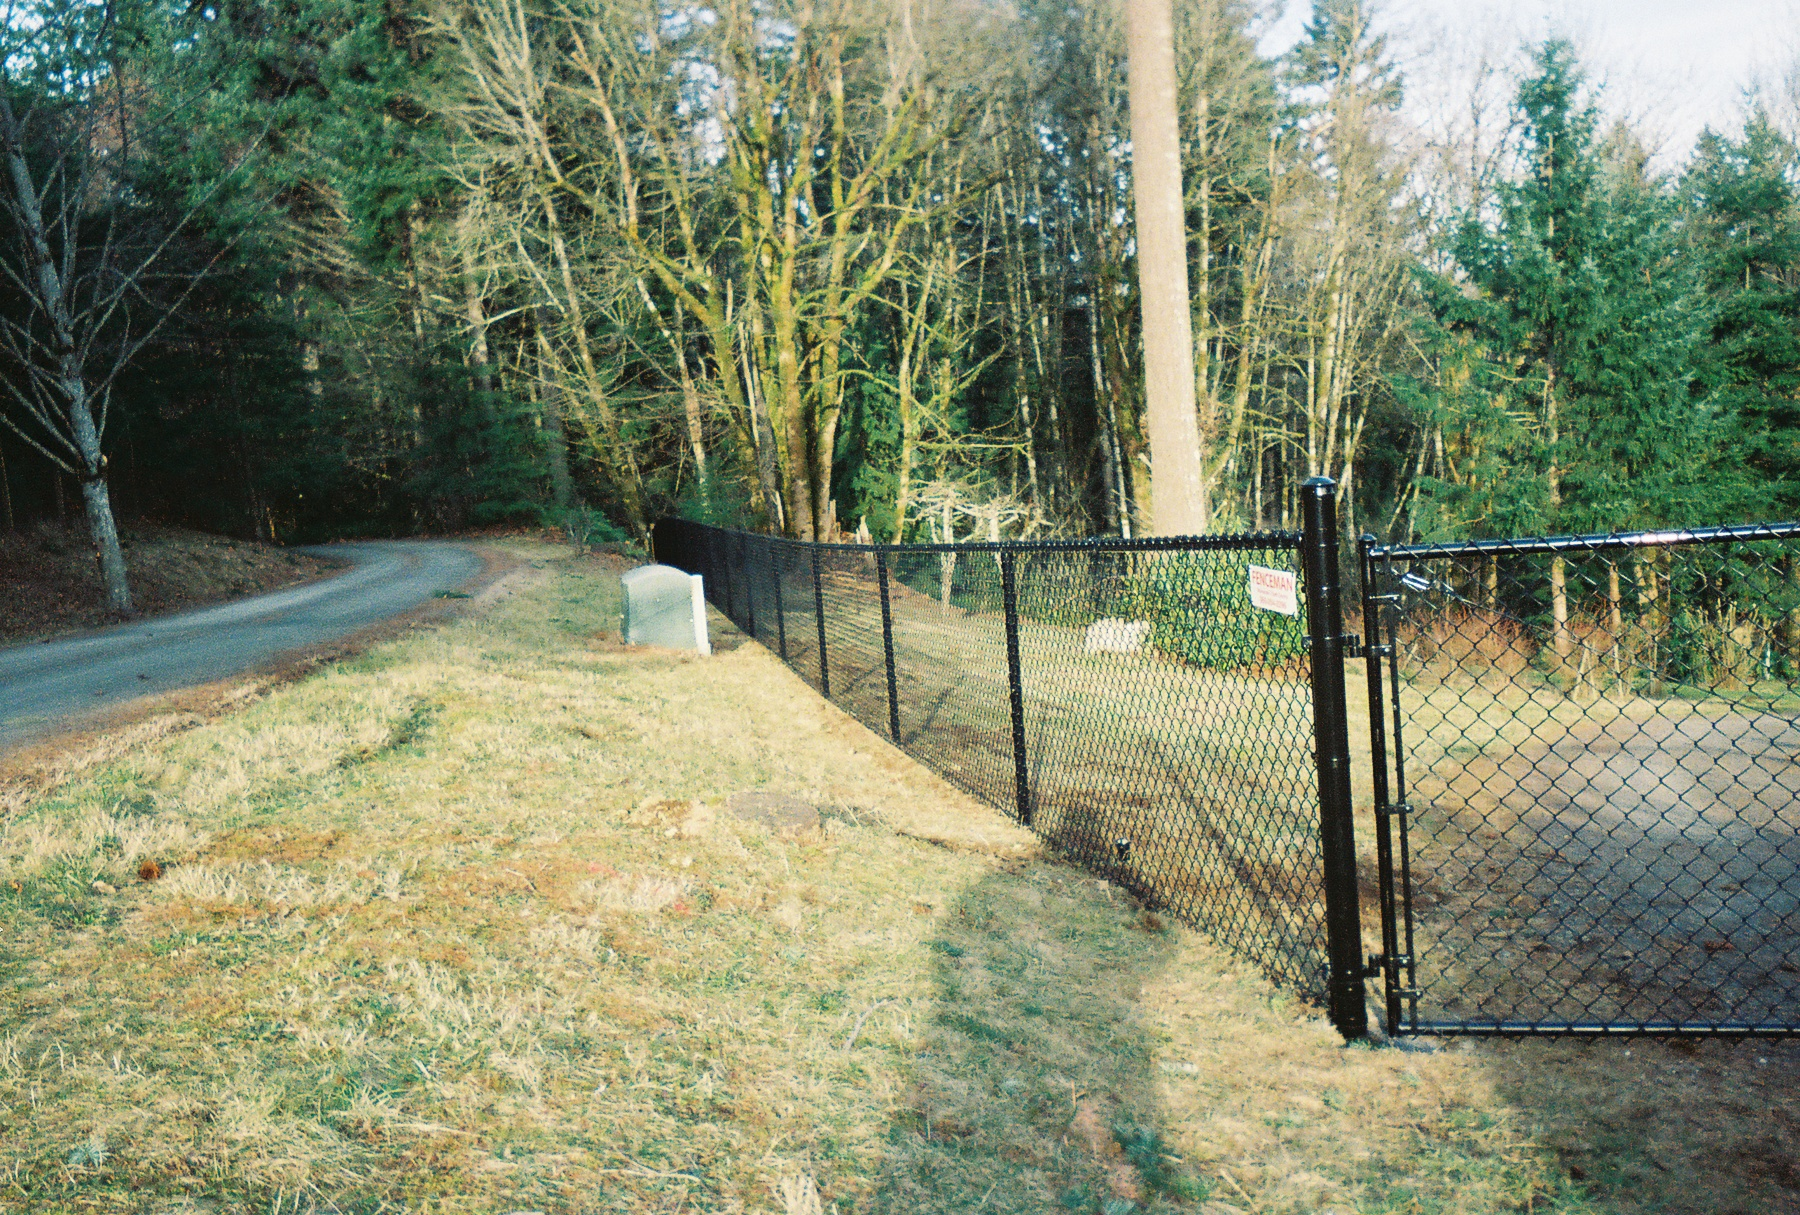 Black Vinyl Chain Link Fence flows harmoniously with the surrounding scenery. Contact Vancouver Washington's Best Fence Builders. The Fenceman Fence Company installs wood, vinyl, chain link and ornamental iron fences. We also offer materials for the do it yourselfer.